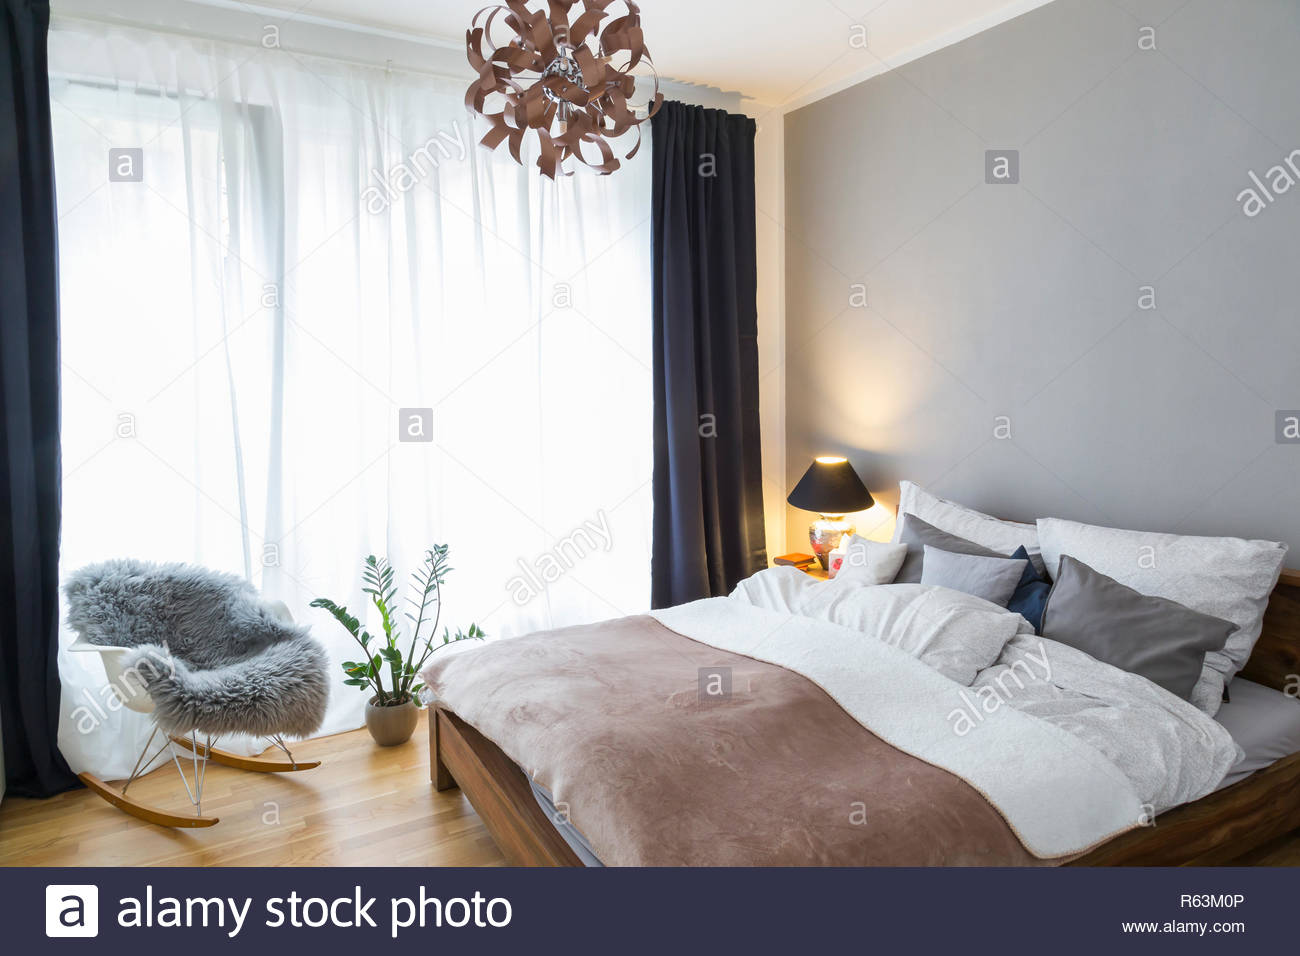 Swell King Size Bed And Rocking Chair In Bedroom Of Modern House Andrewgaddart Wooden Chair Designs For Living Room Andrewgaddartcom